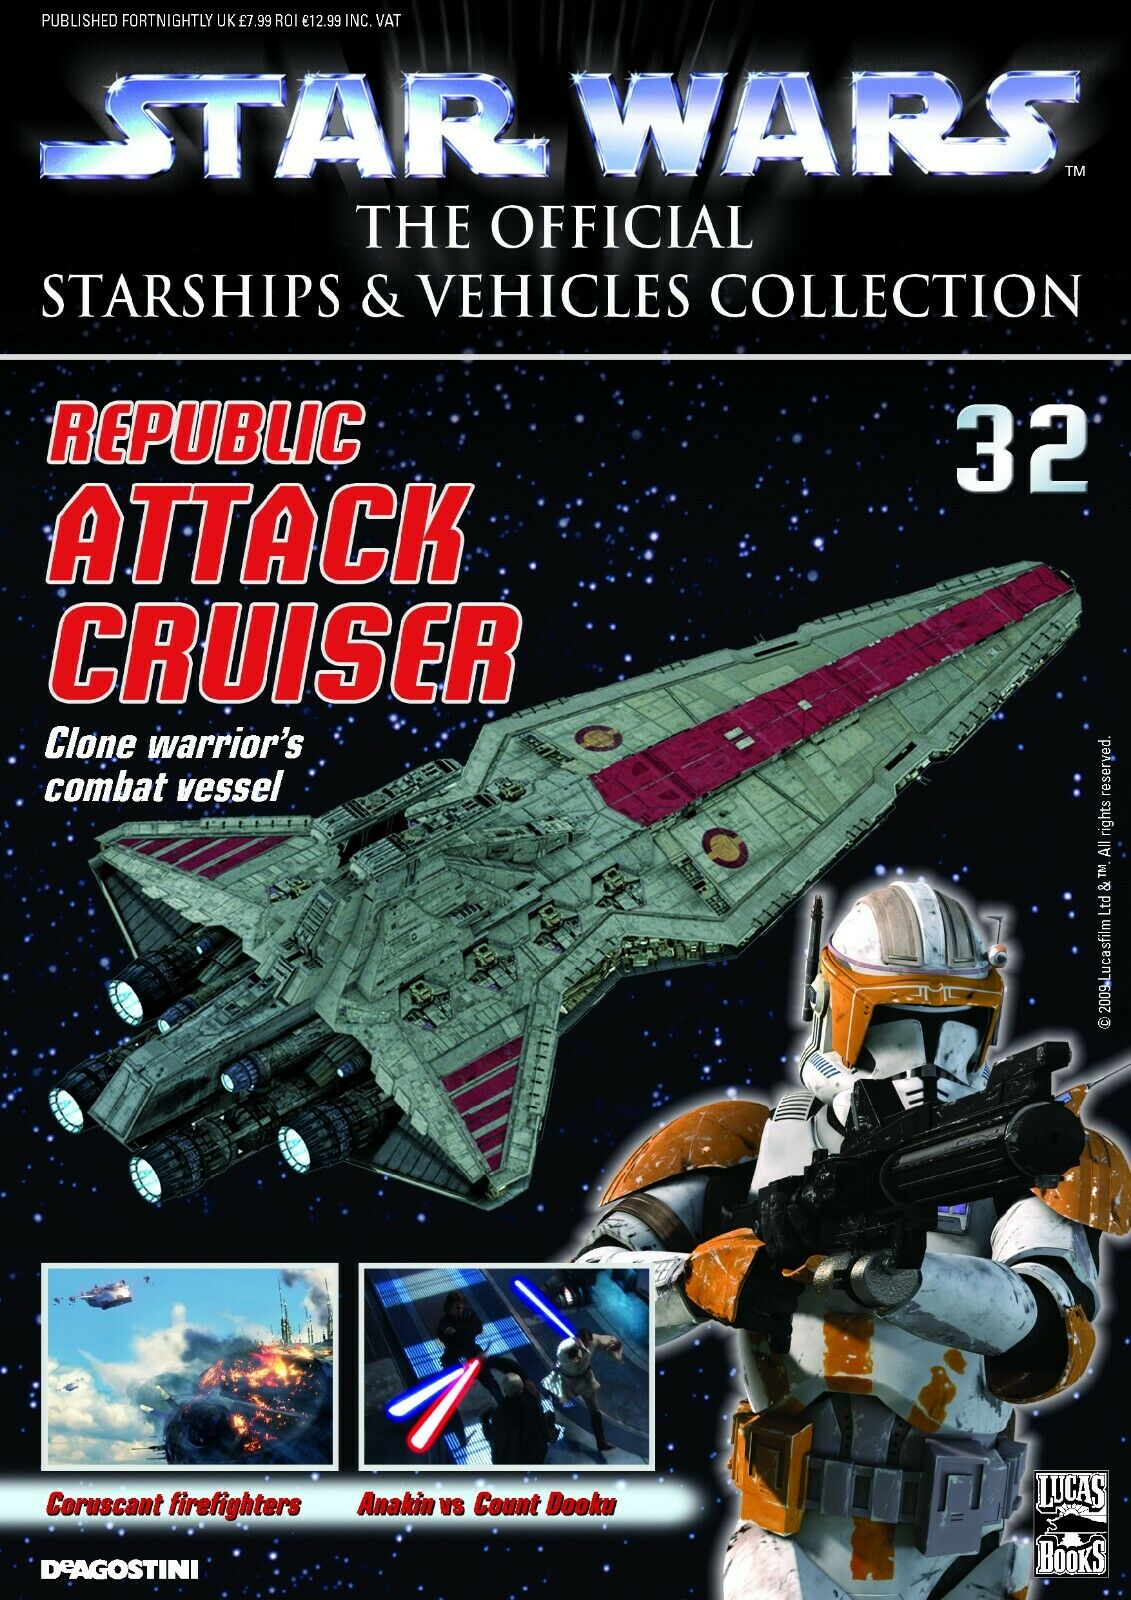 File:StarWarsStarshipsVehicles32.jpg